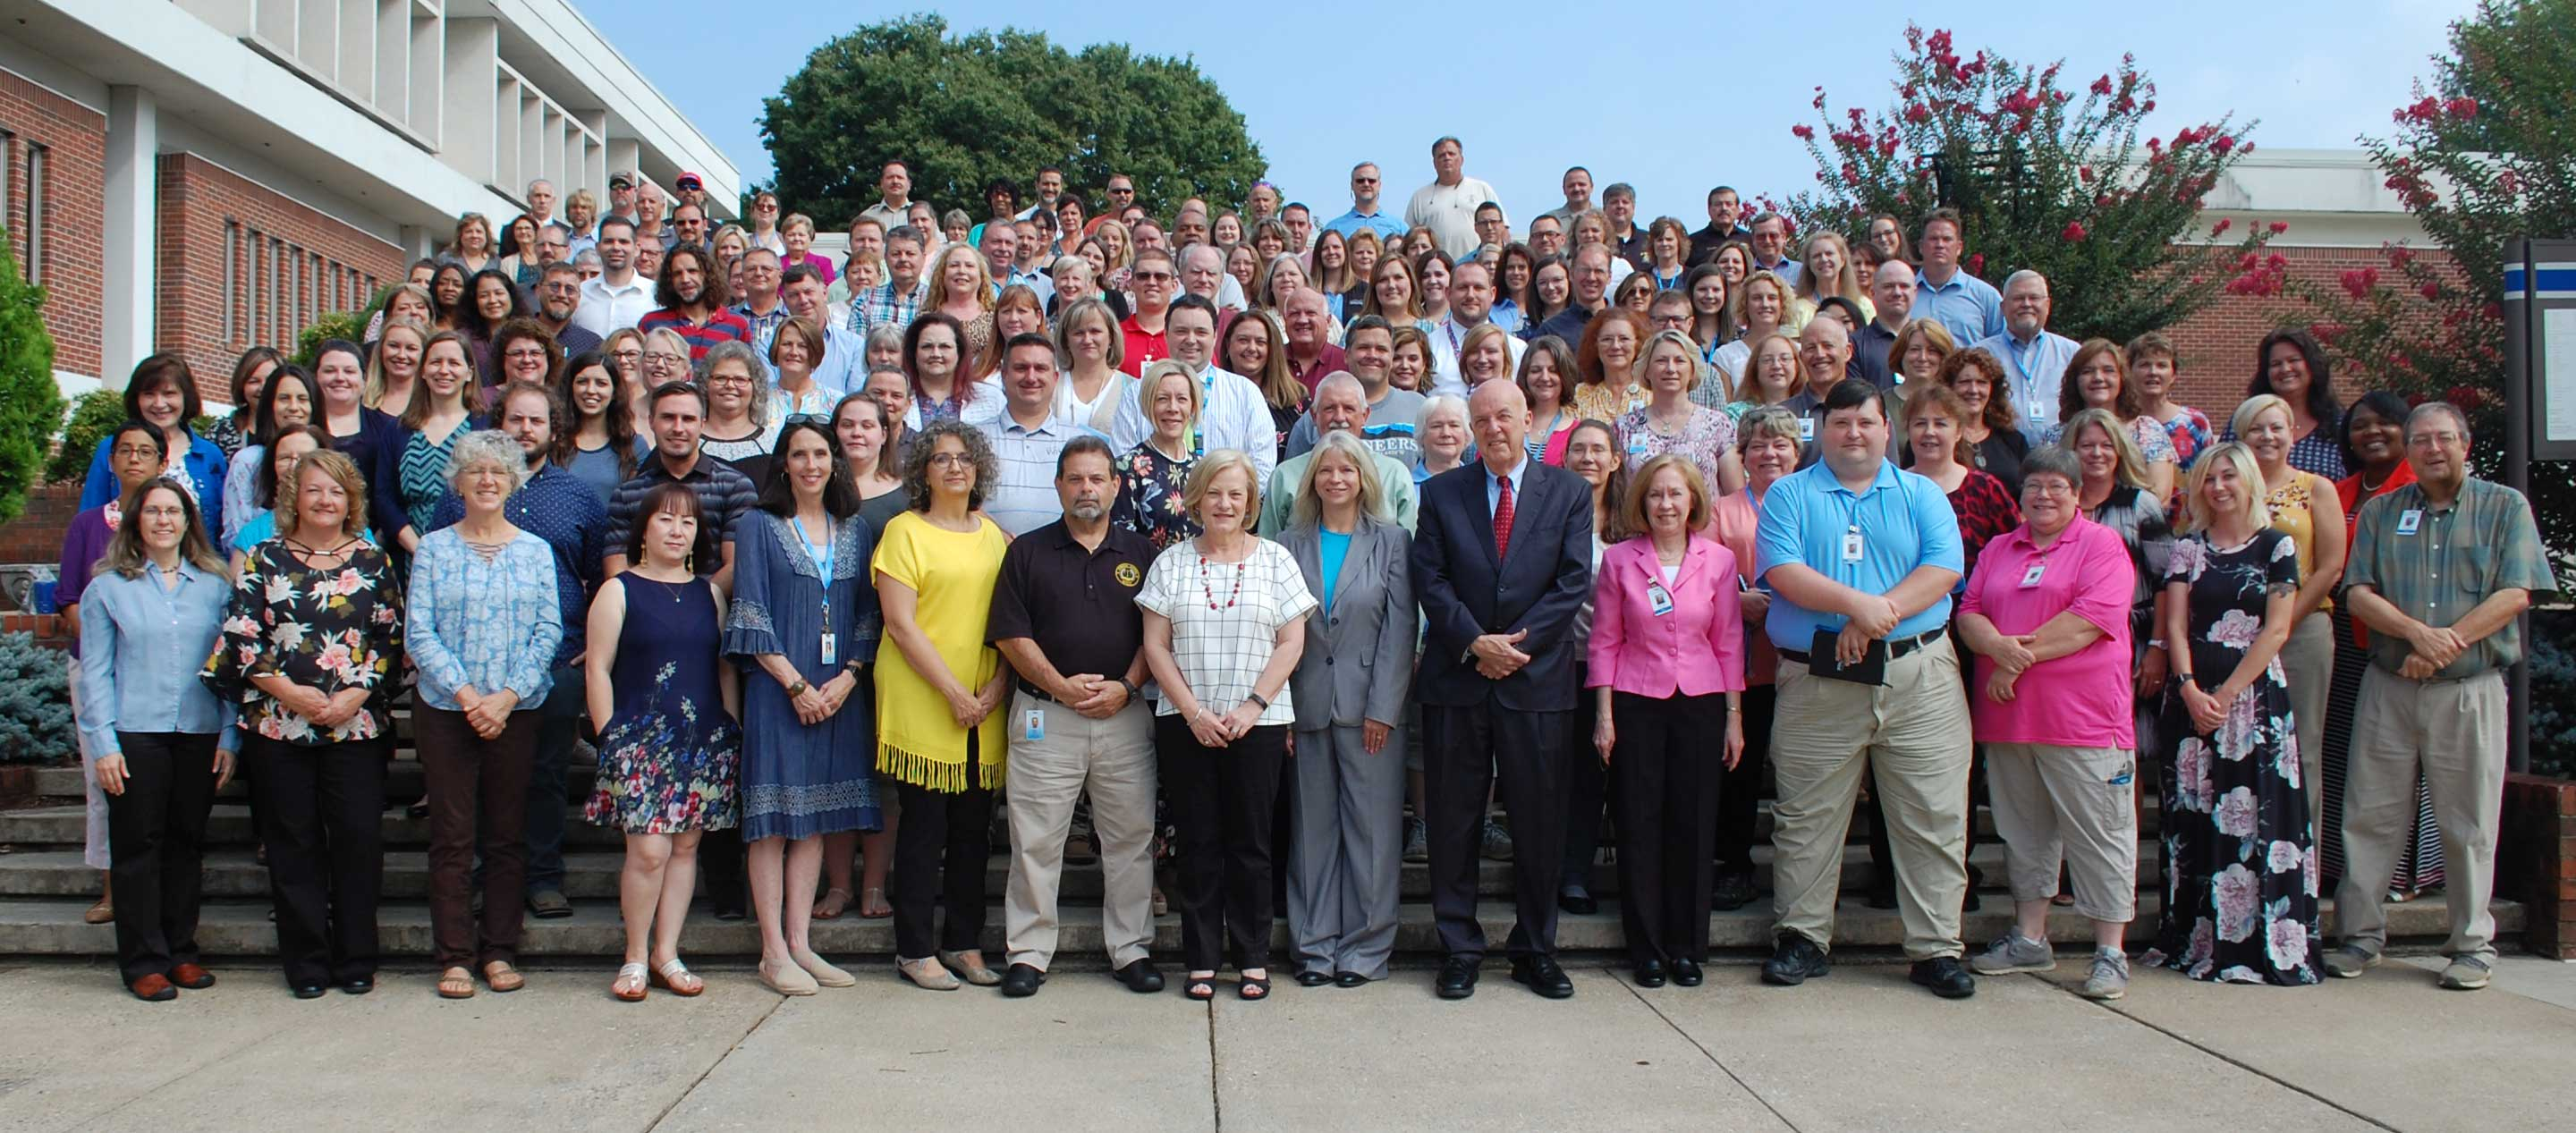 Photo of WPCC employees made August 12, 2019 on the steps between Moore, Patton, and Burnett Halls